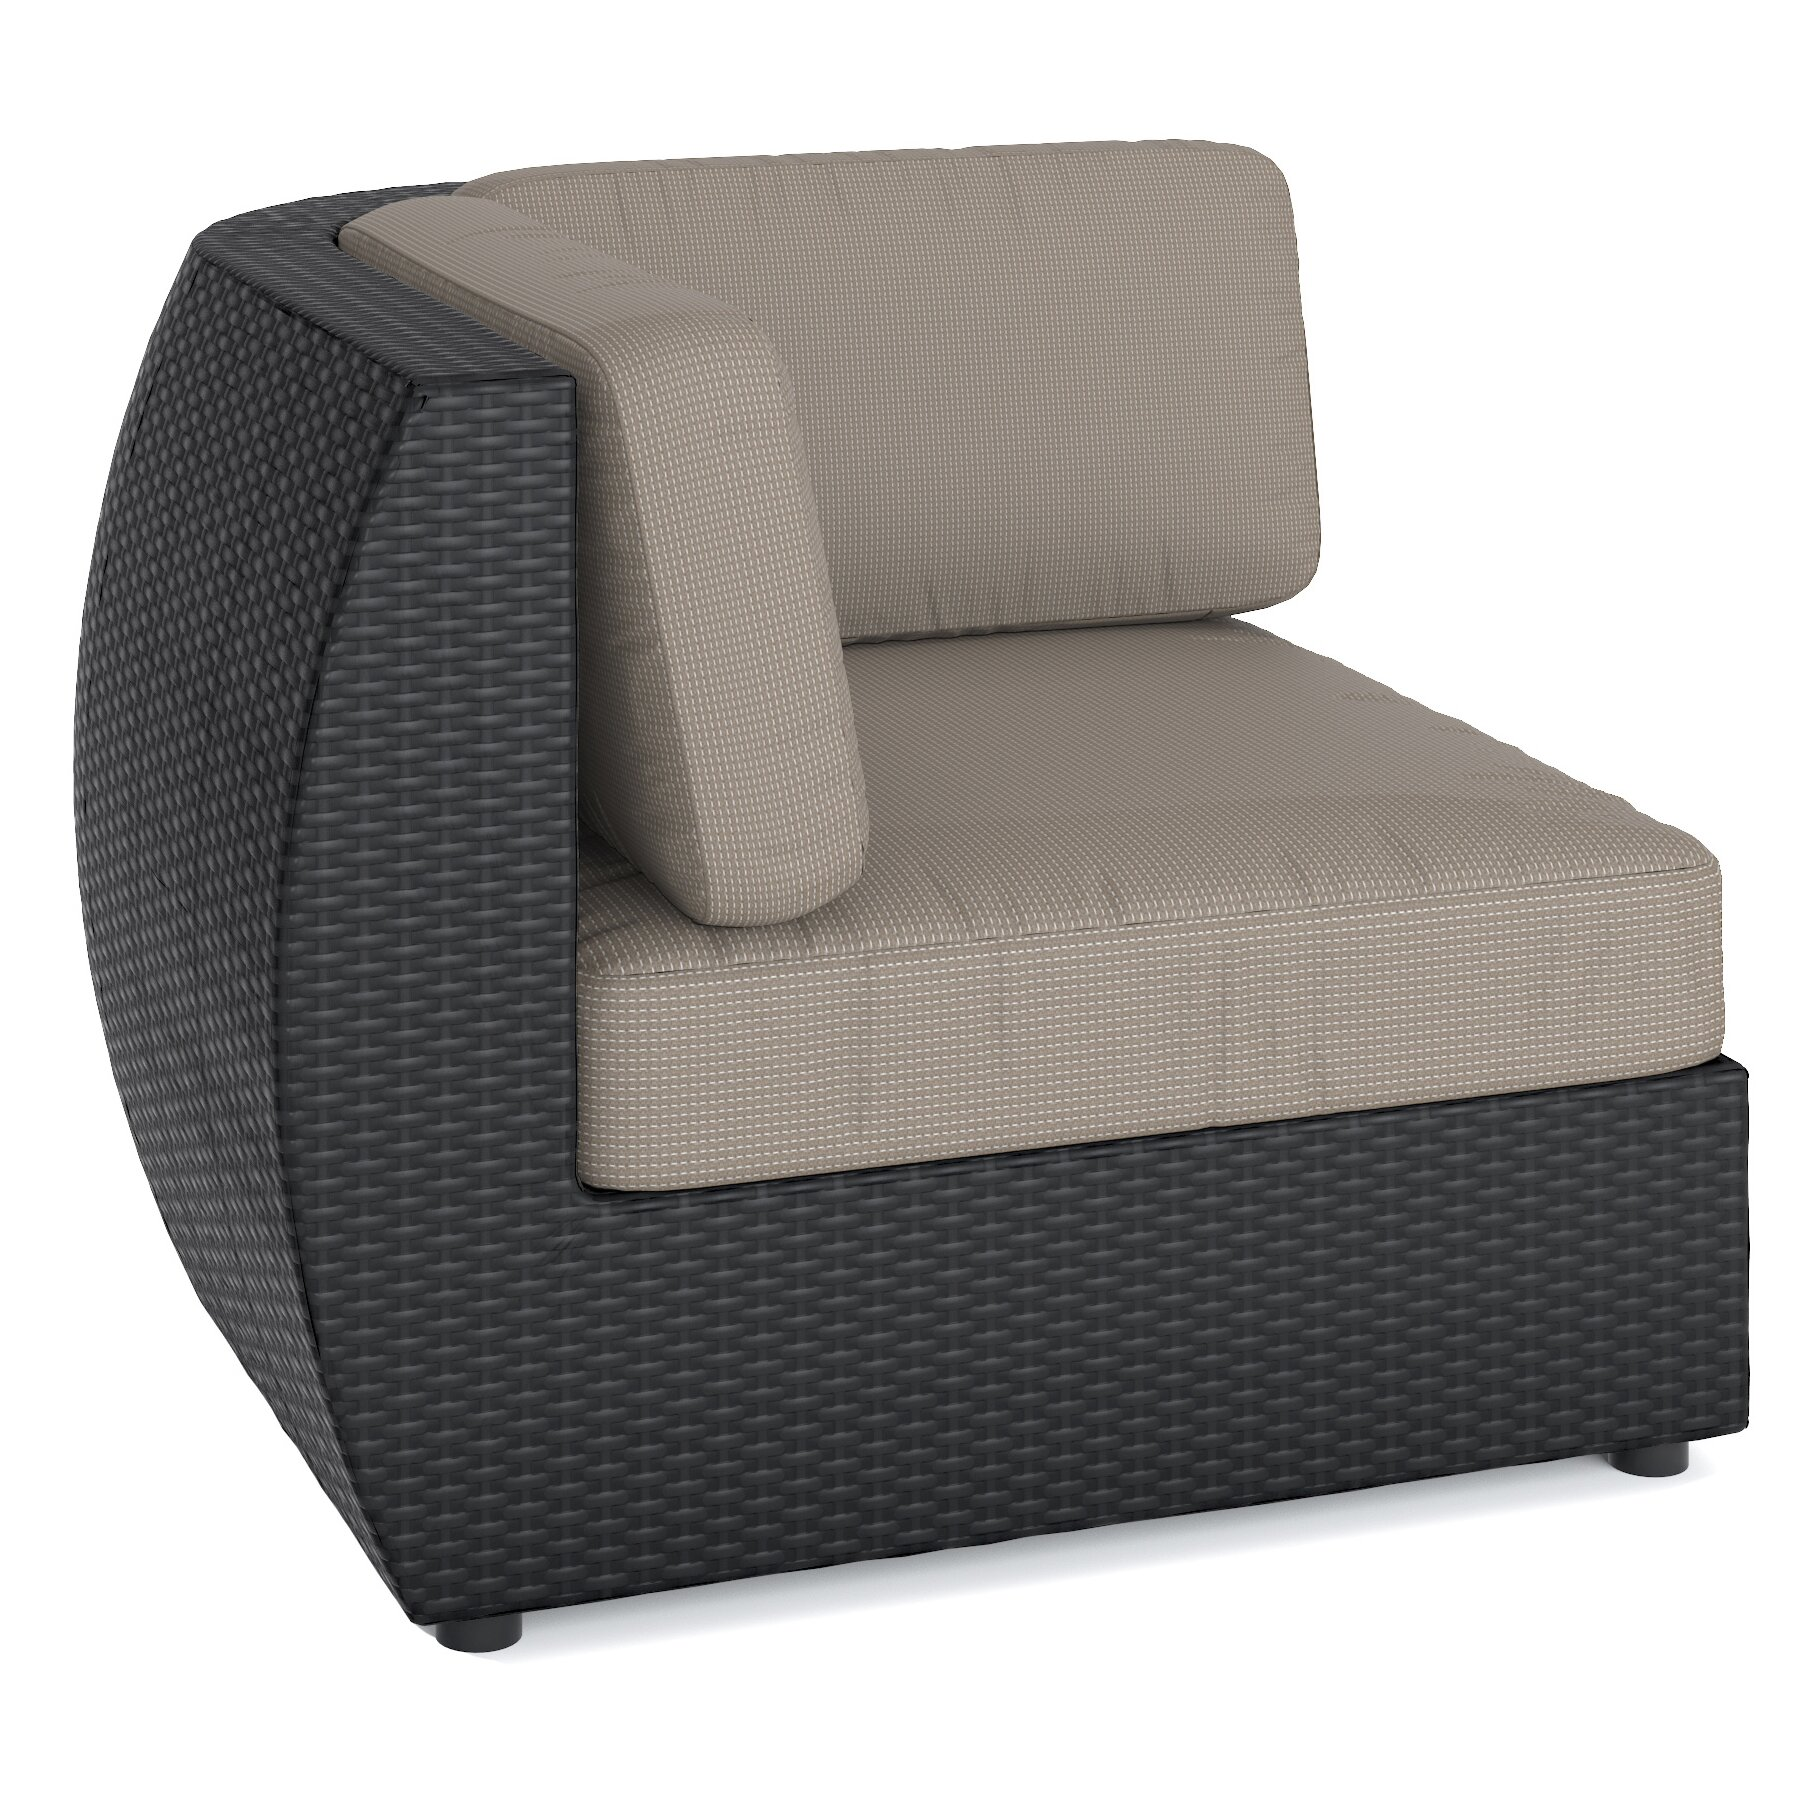 dCOR design Seattle Lounge Chair with Cushion & Reviews